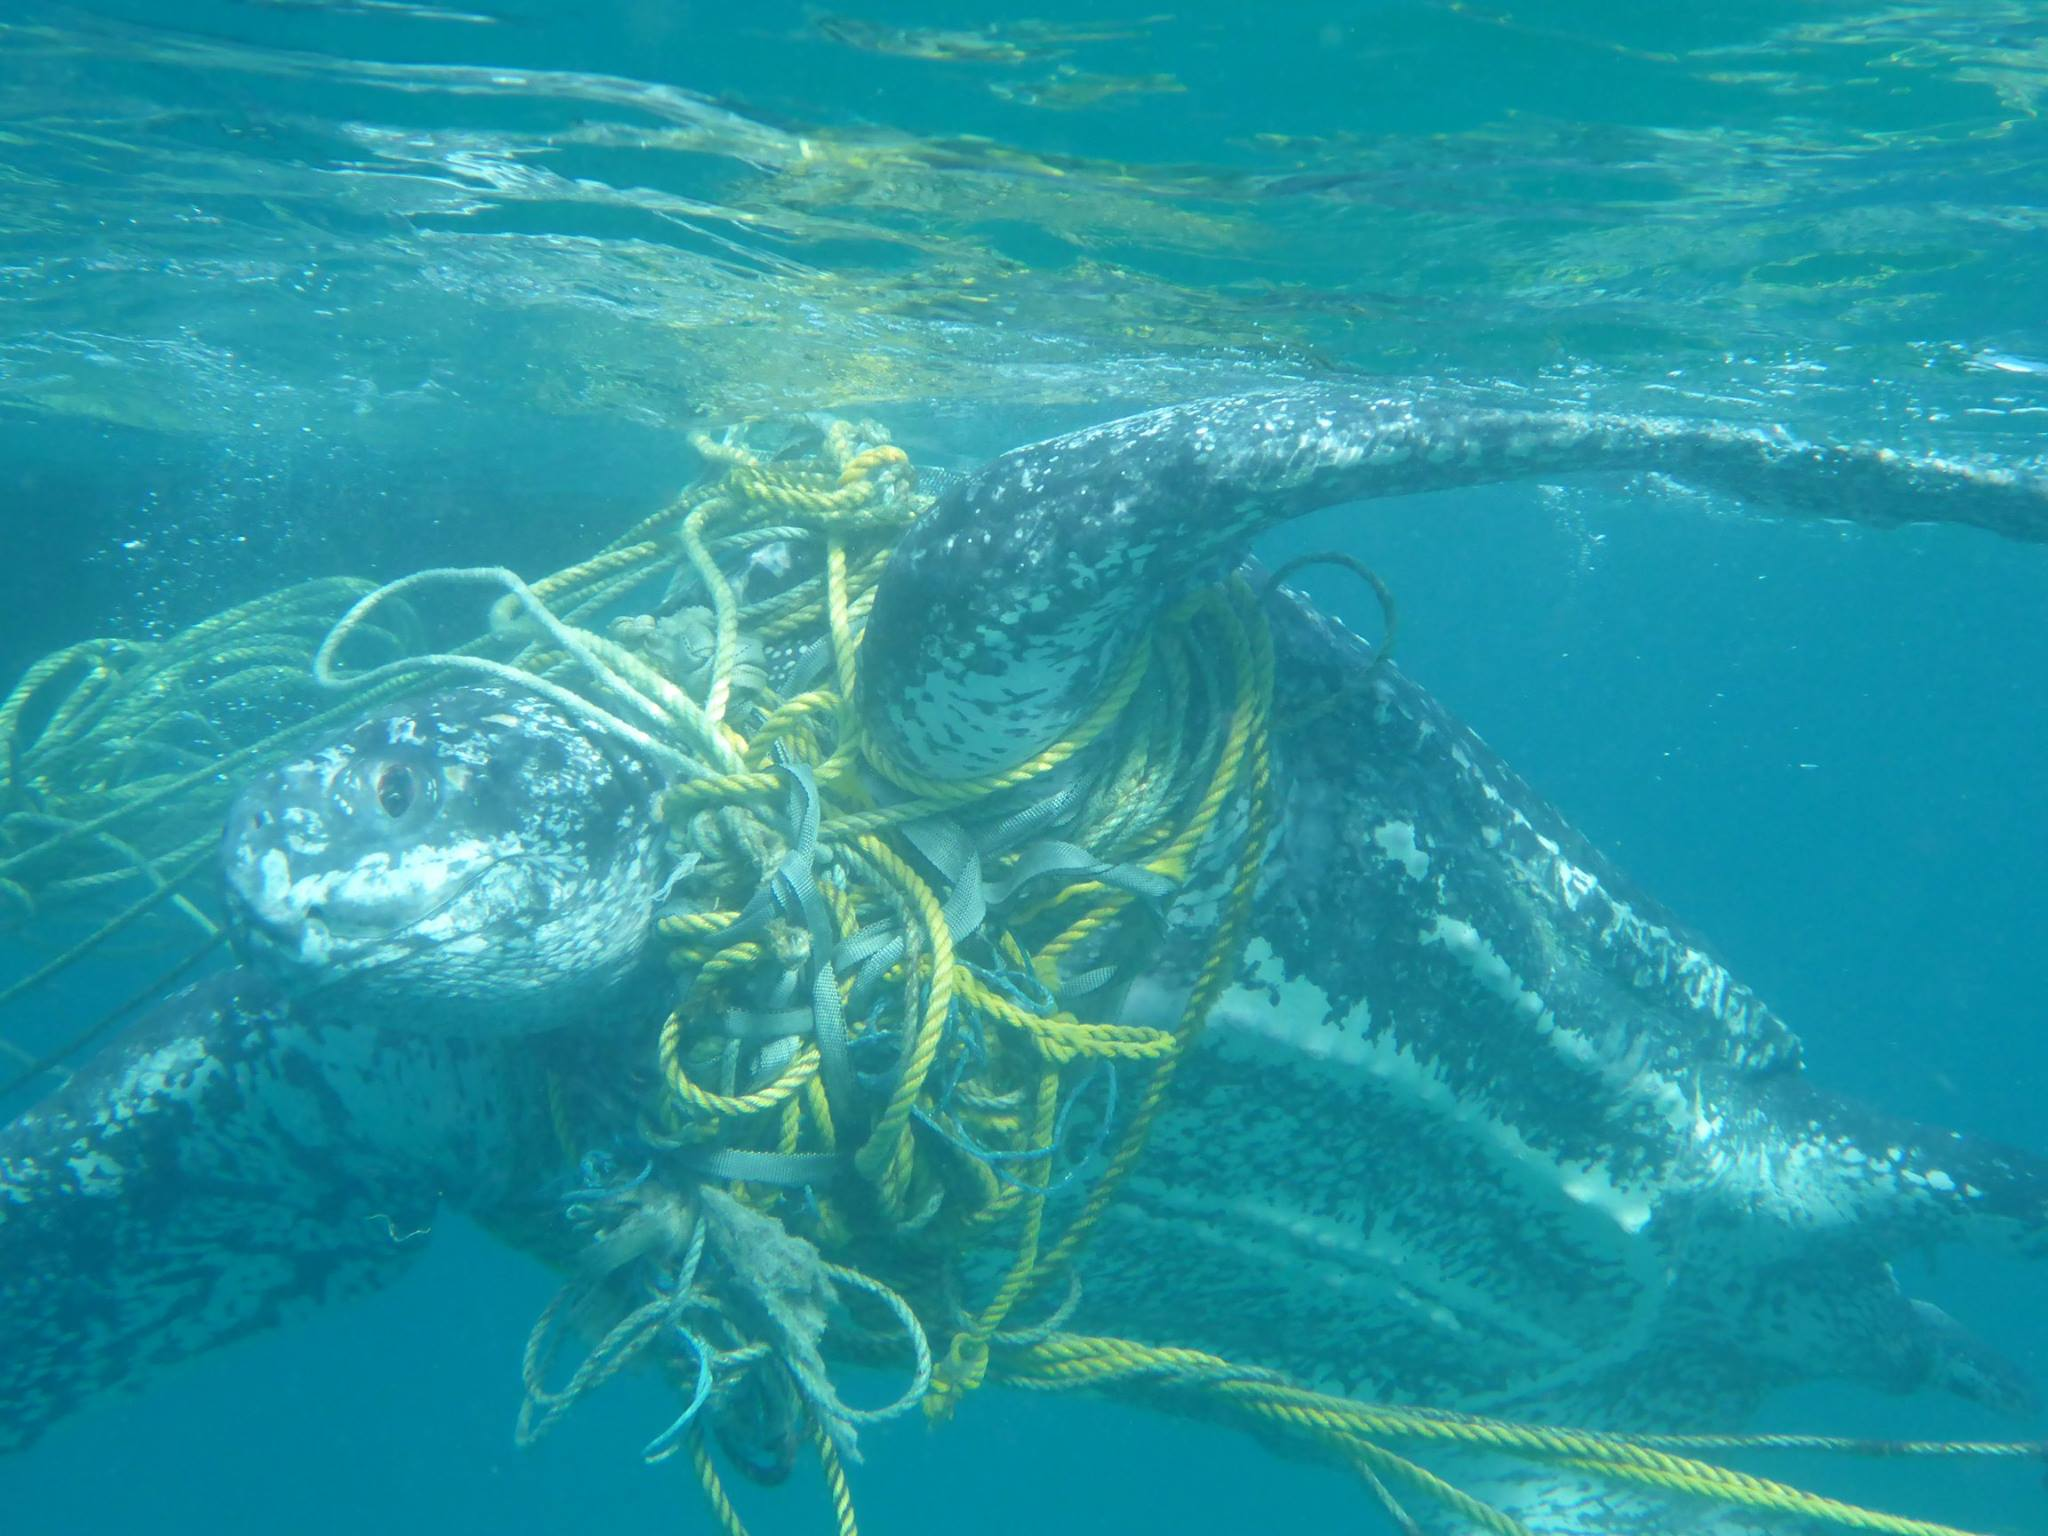 Hundreds of marine turtles are killed each year from becoming entangled in waste found in oceans and on beaches.